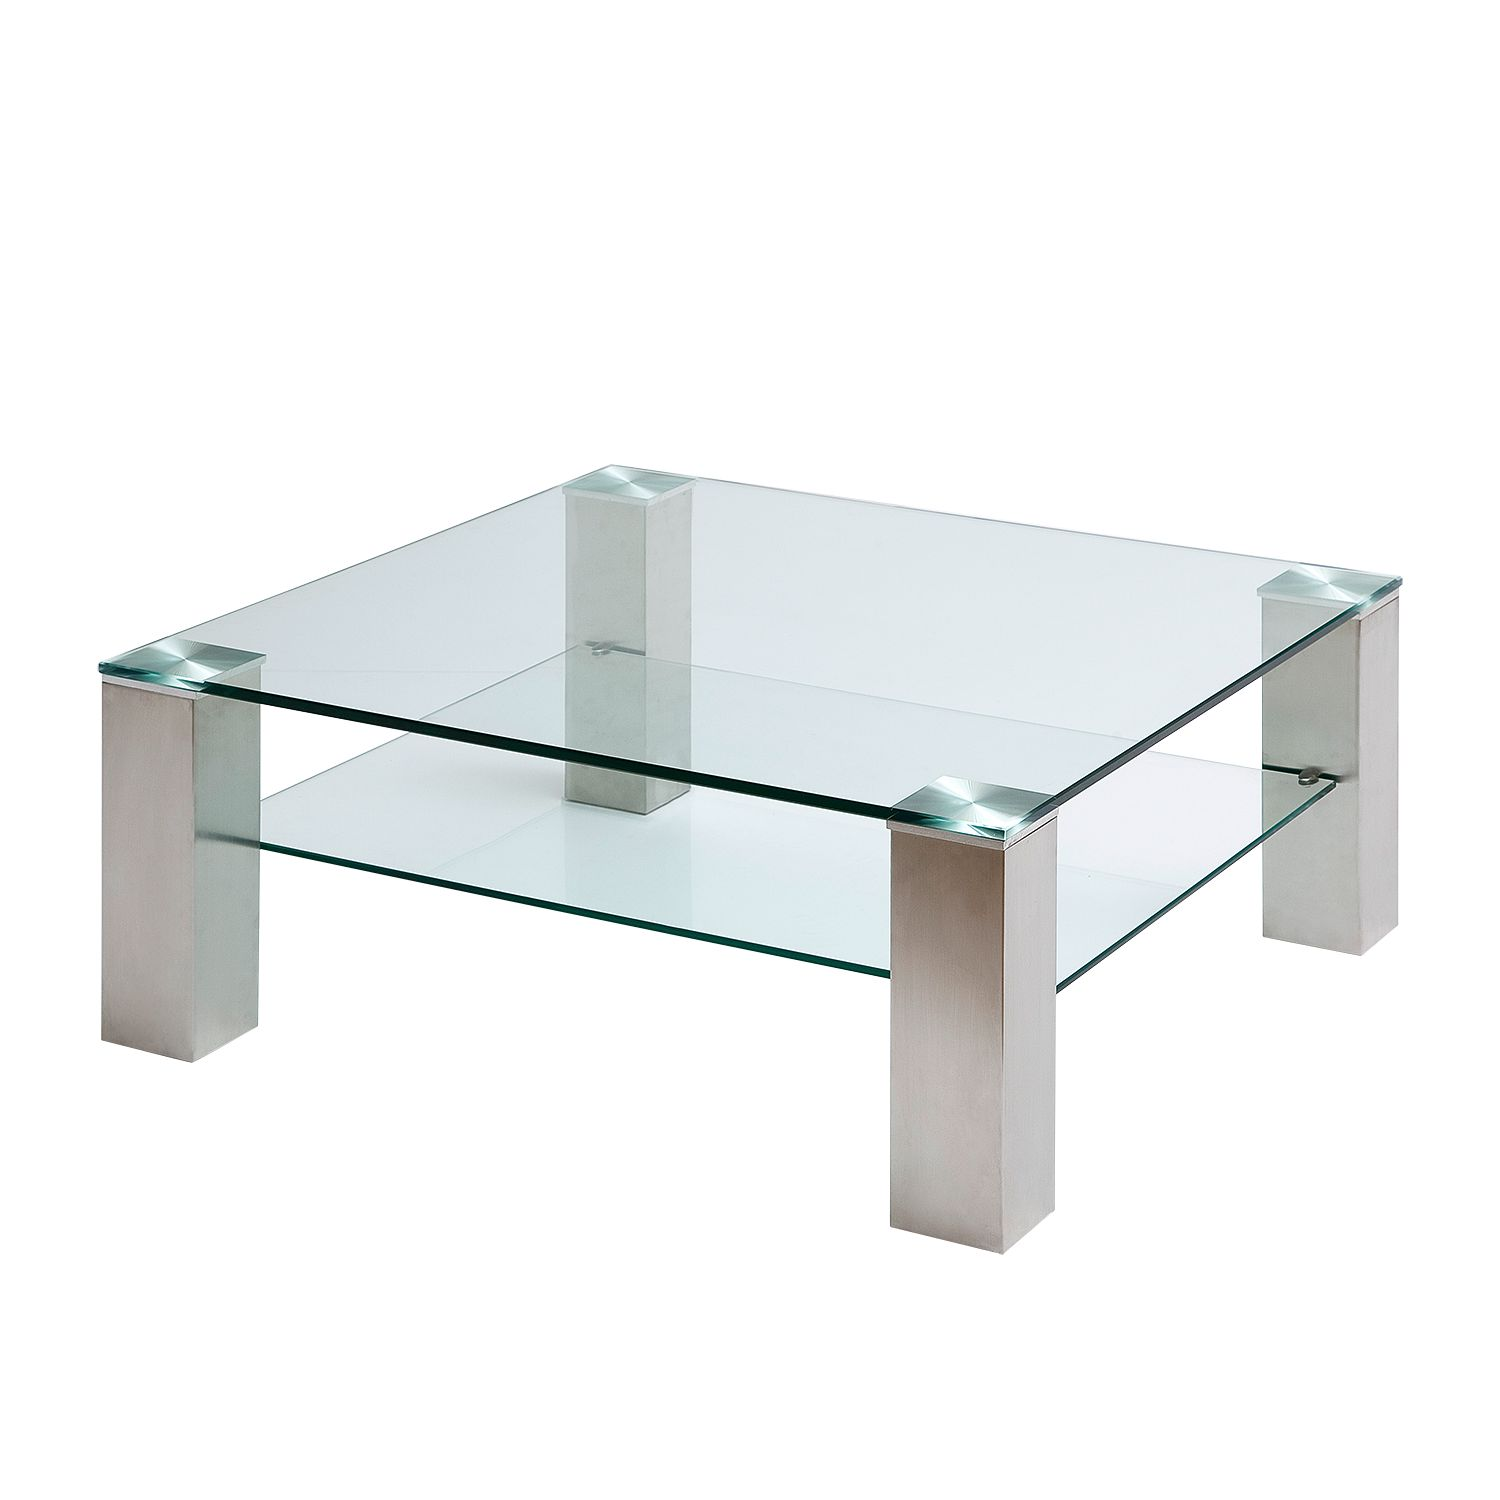 Table basse Malis - Acier inoxydable - 90 x 90 cm, loftscape